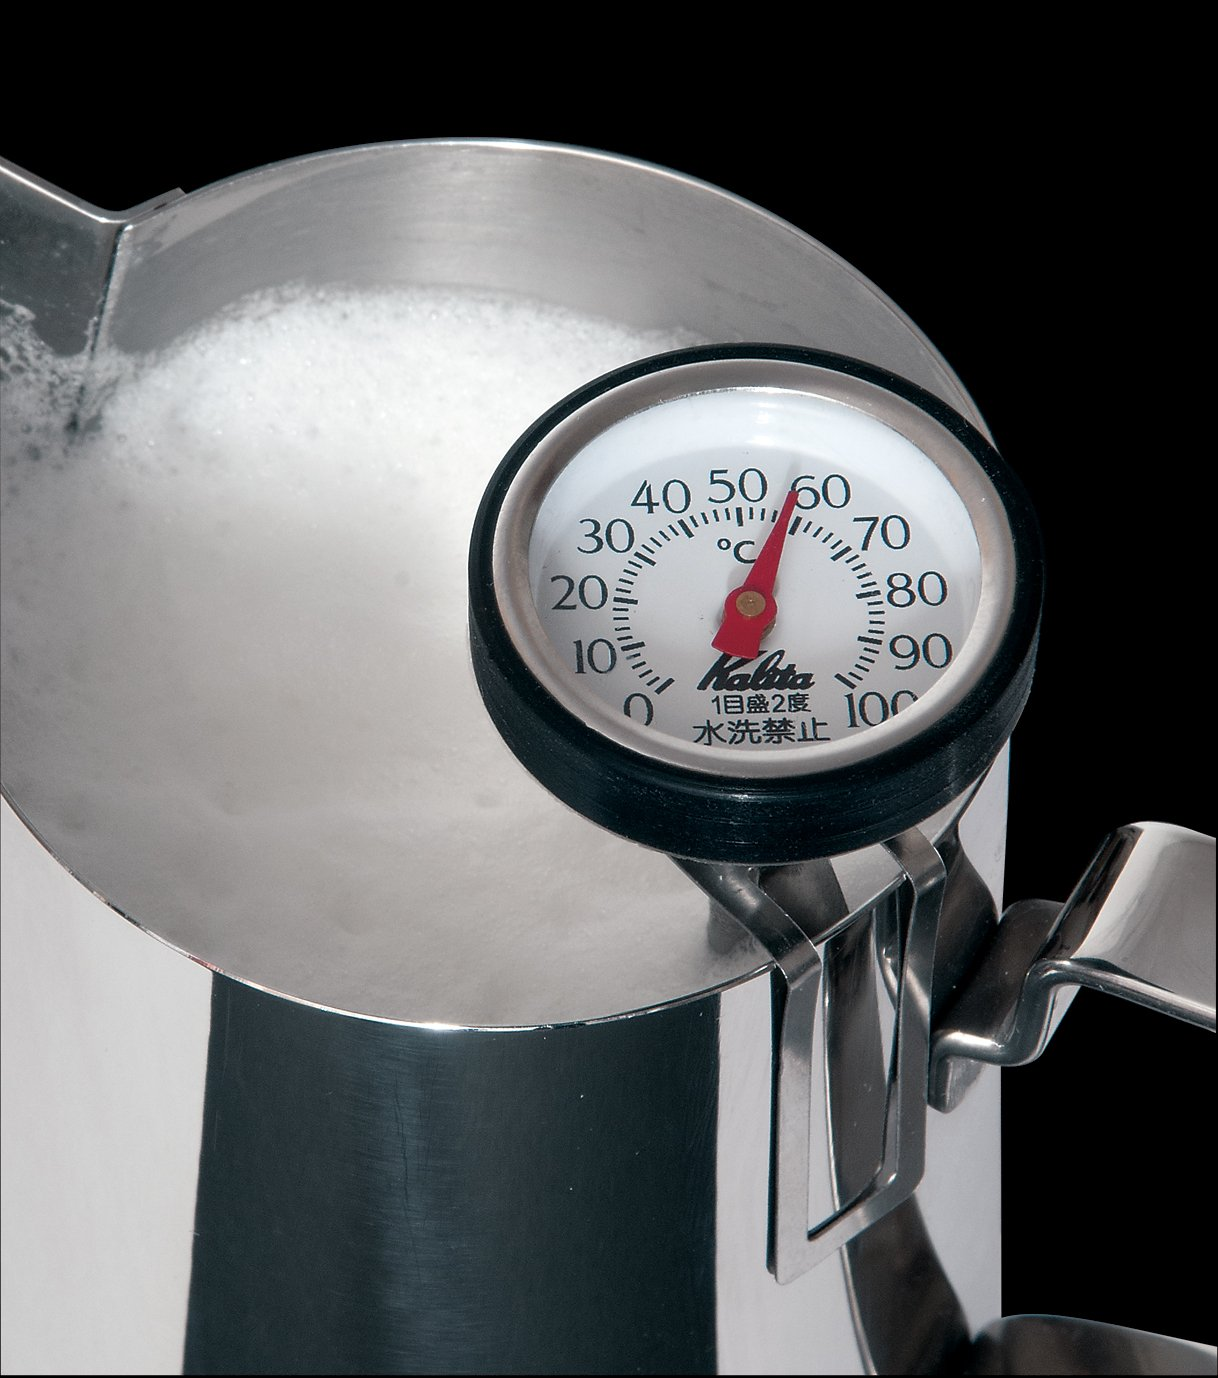 Kalita Thermometer For Use With Milk Foamer 64224 By Hario V60 Drip Vtm 1b Kitchen Dining